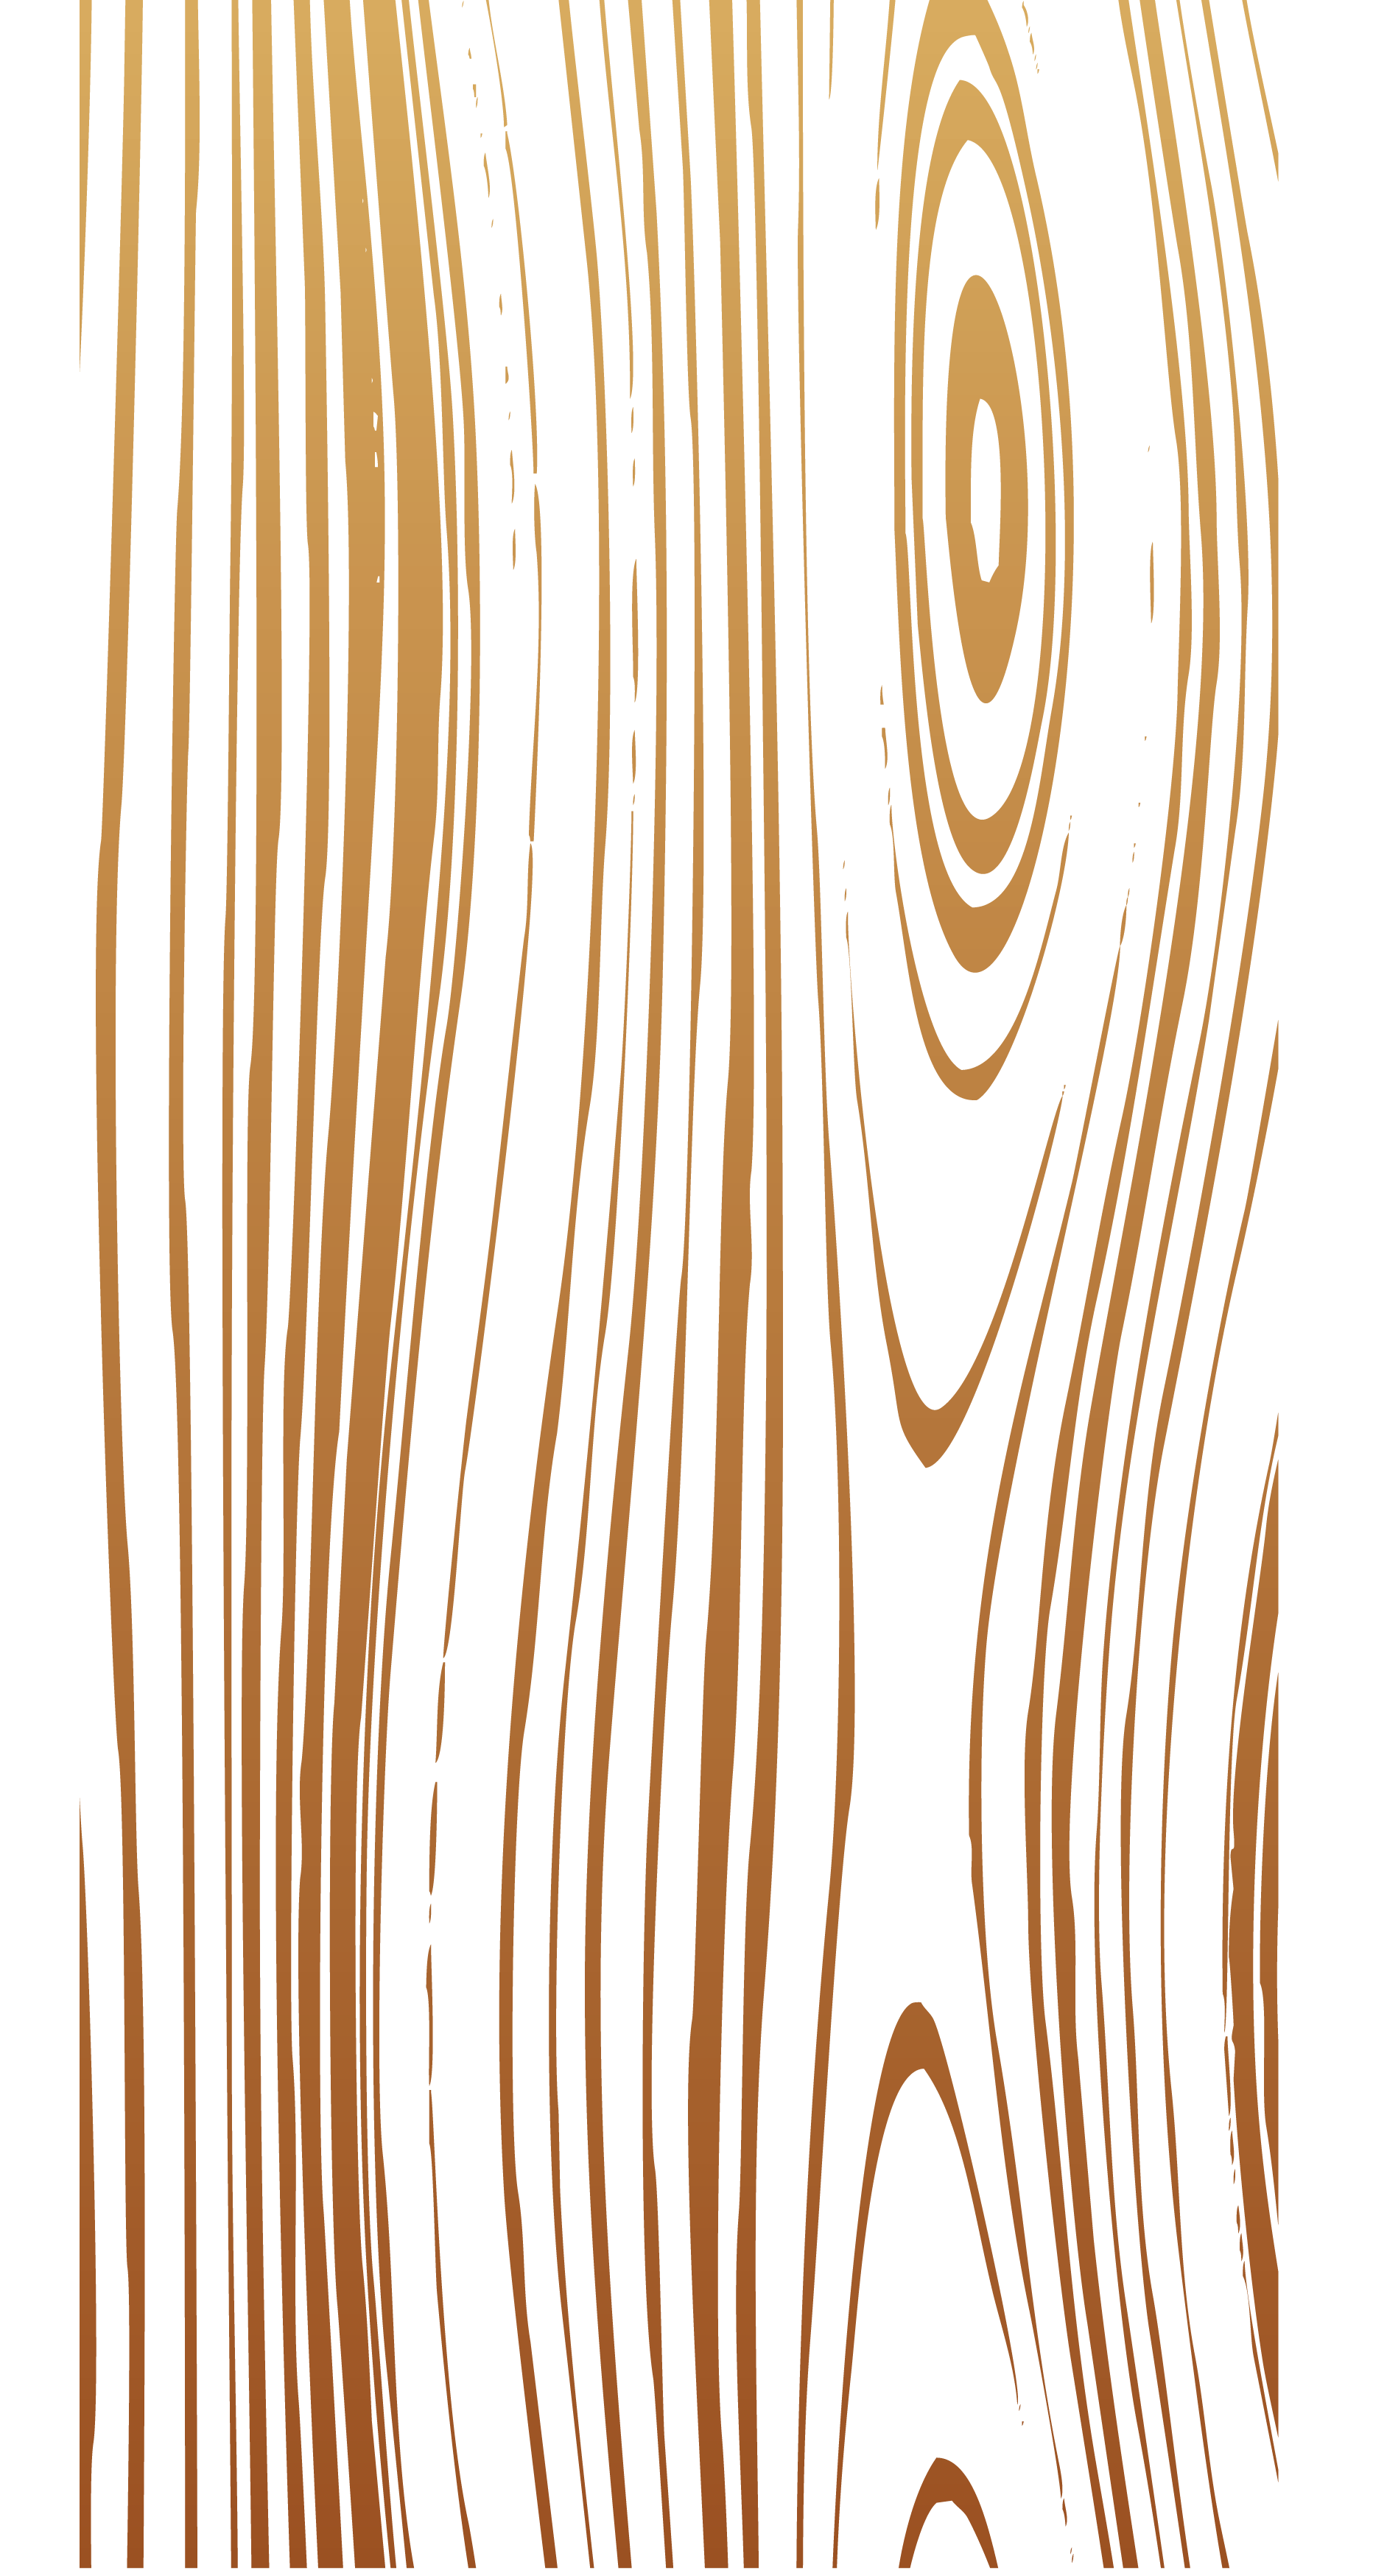 Transparent wood effect png. Clipart fall woods